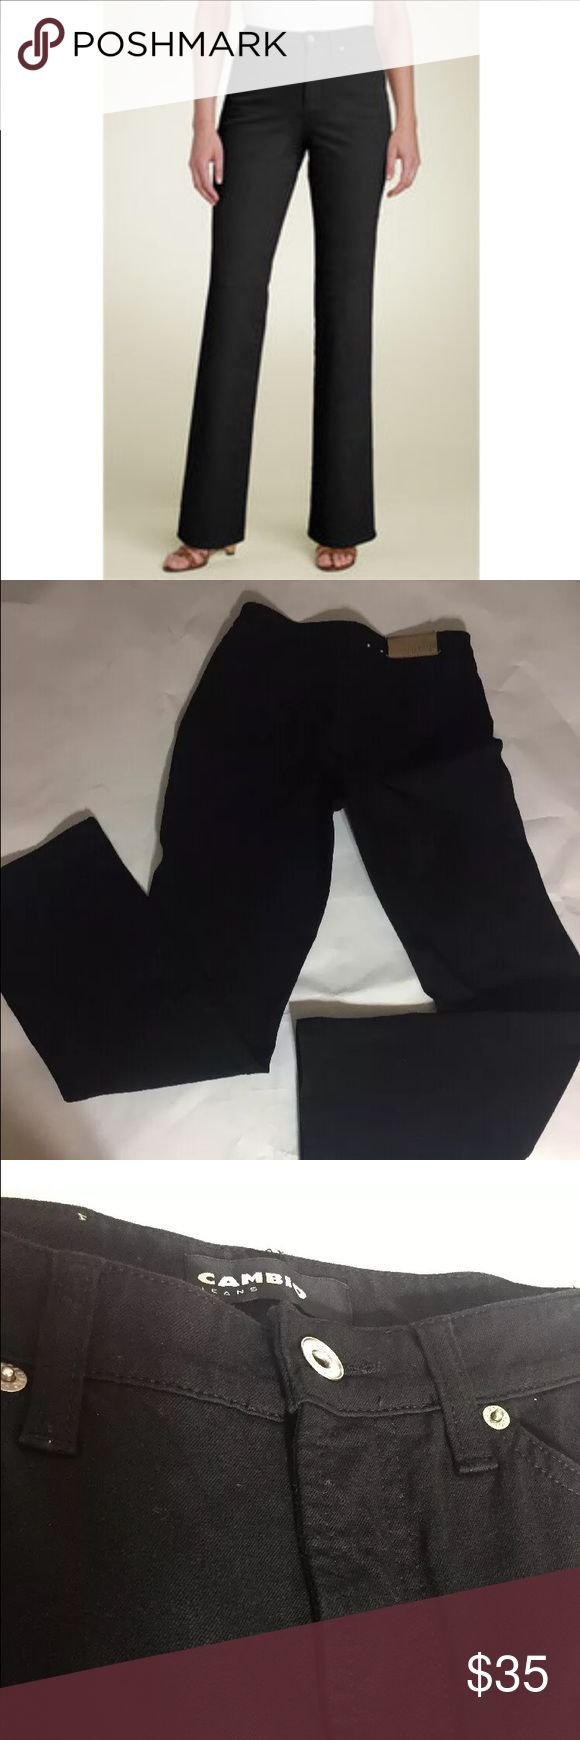 "Cambio Jade Black Twill Stretch Jeans SZ 6 EUC Cambio black Jade jeans. Bi-stretch twill for comfort. Slight boot cut.  Size 4. Excellent used condition. Color in tact. Clean. No signs of wear expect slight fading in the hem of pants. Unnoticeable. See photos.   Approximate measurements- Waist: 27"" when doubled.  Front Rise: 9"" Inseam: 34.5"" Back Rise: 13"" Outseam: 41"" 4 pockets.  5 Belt loops. Made in Poland.  Designed to be a close fit. Recommended ordering 1 size up than your usual size…"